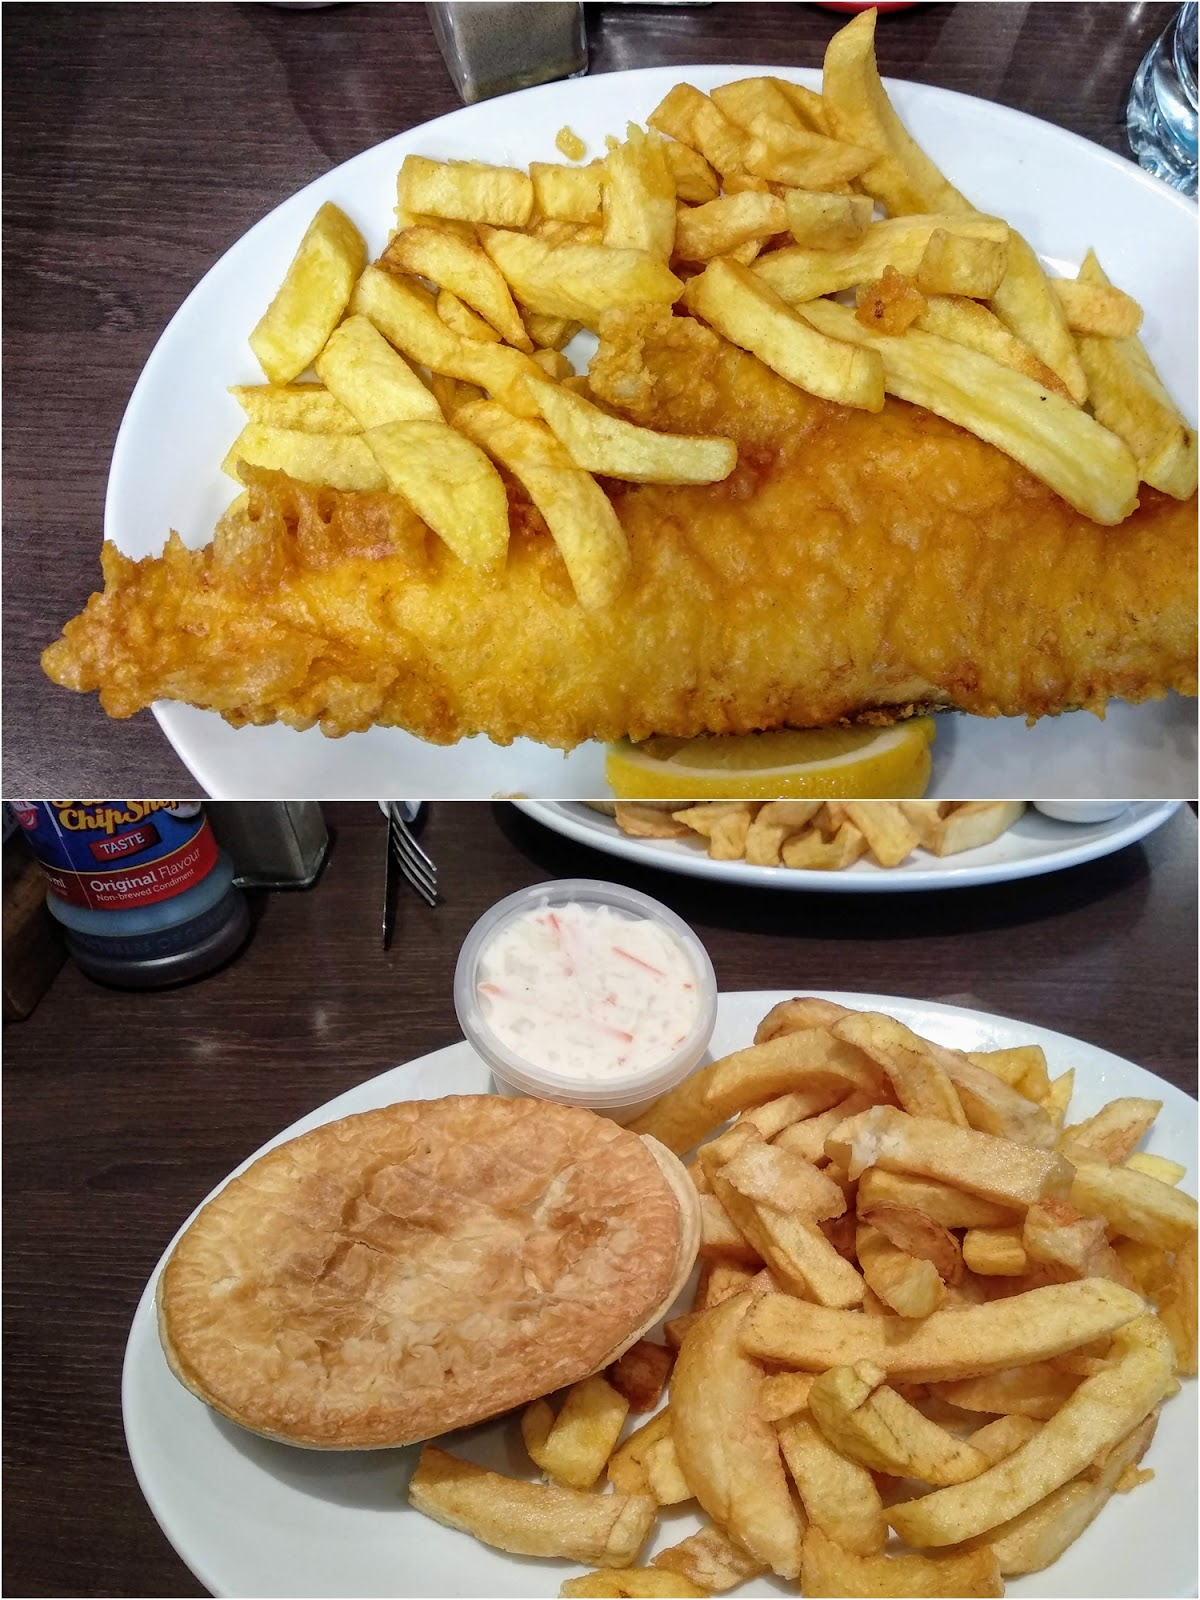 Londres Hotel e Restaurantes - Micky's Fish and Chips